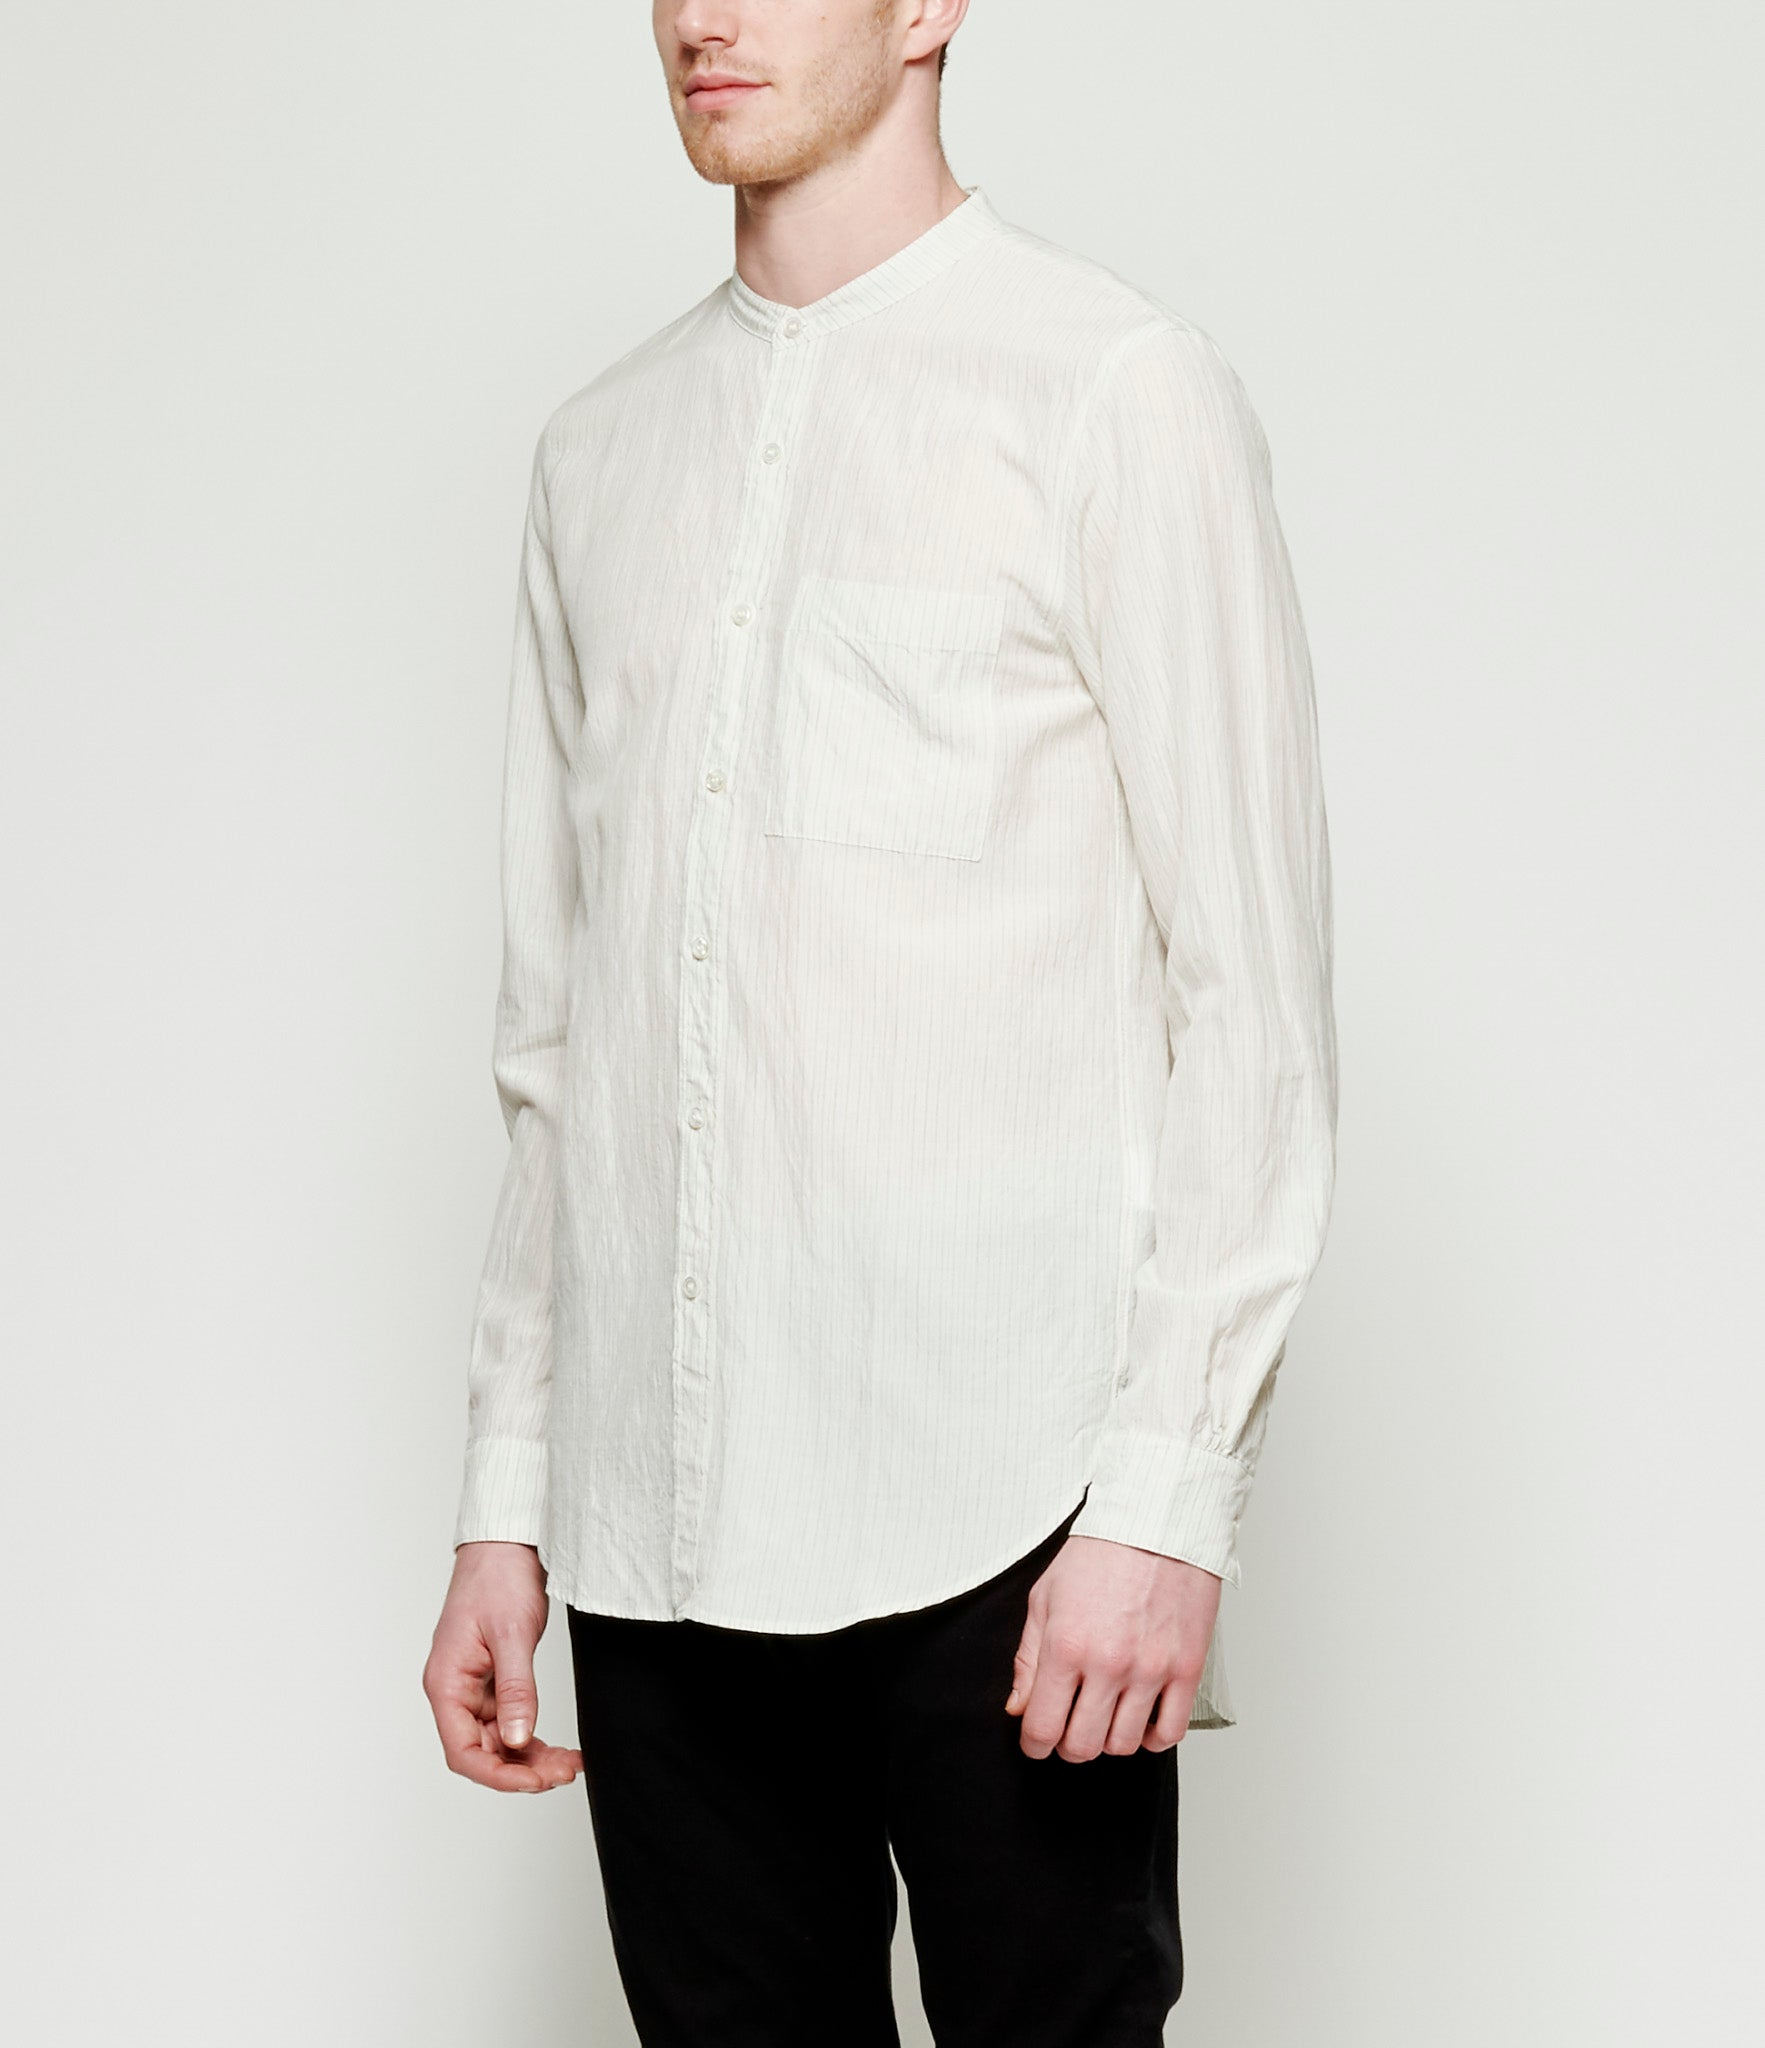 Attachment Kazuyuki Kumagai Pinstripe Band Collar Shirt